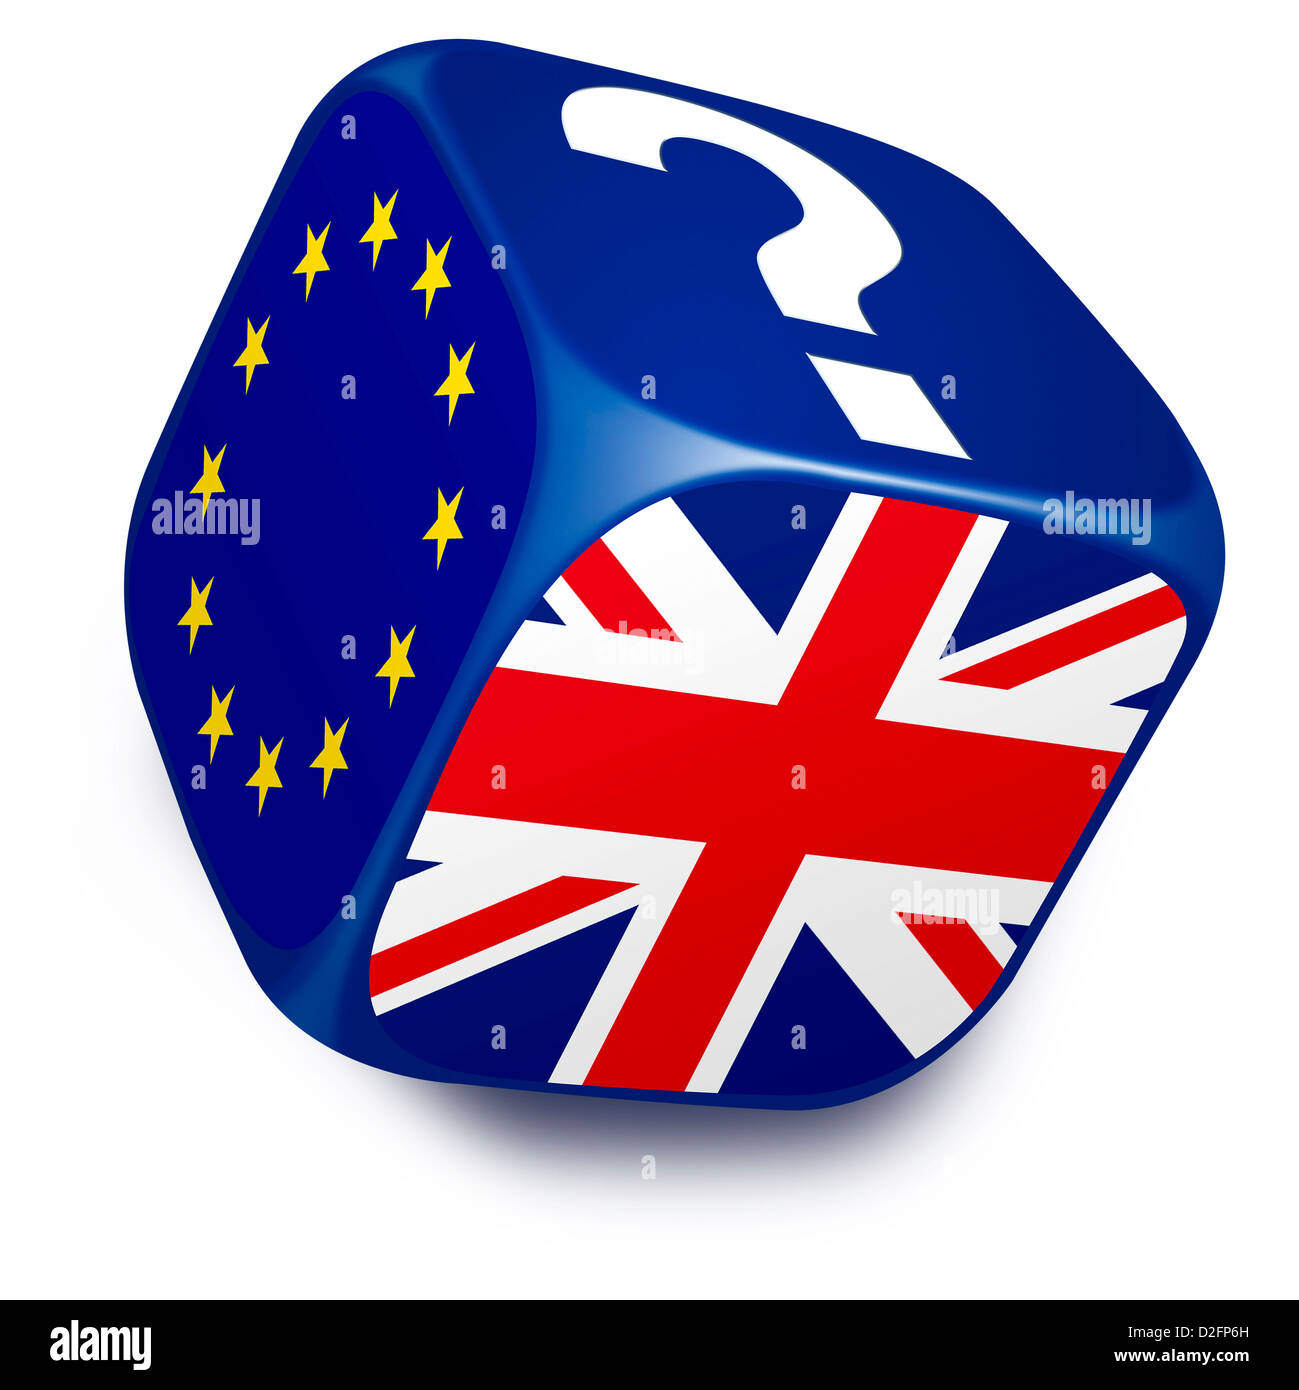 Dice with European Union Flag, UK flag and a question mark on its sides - Brexit negotiations, negotiating new deal - Stock Image